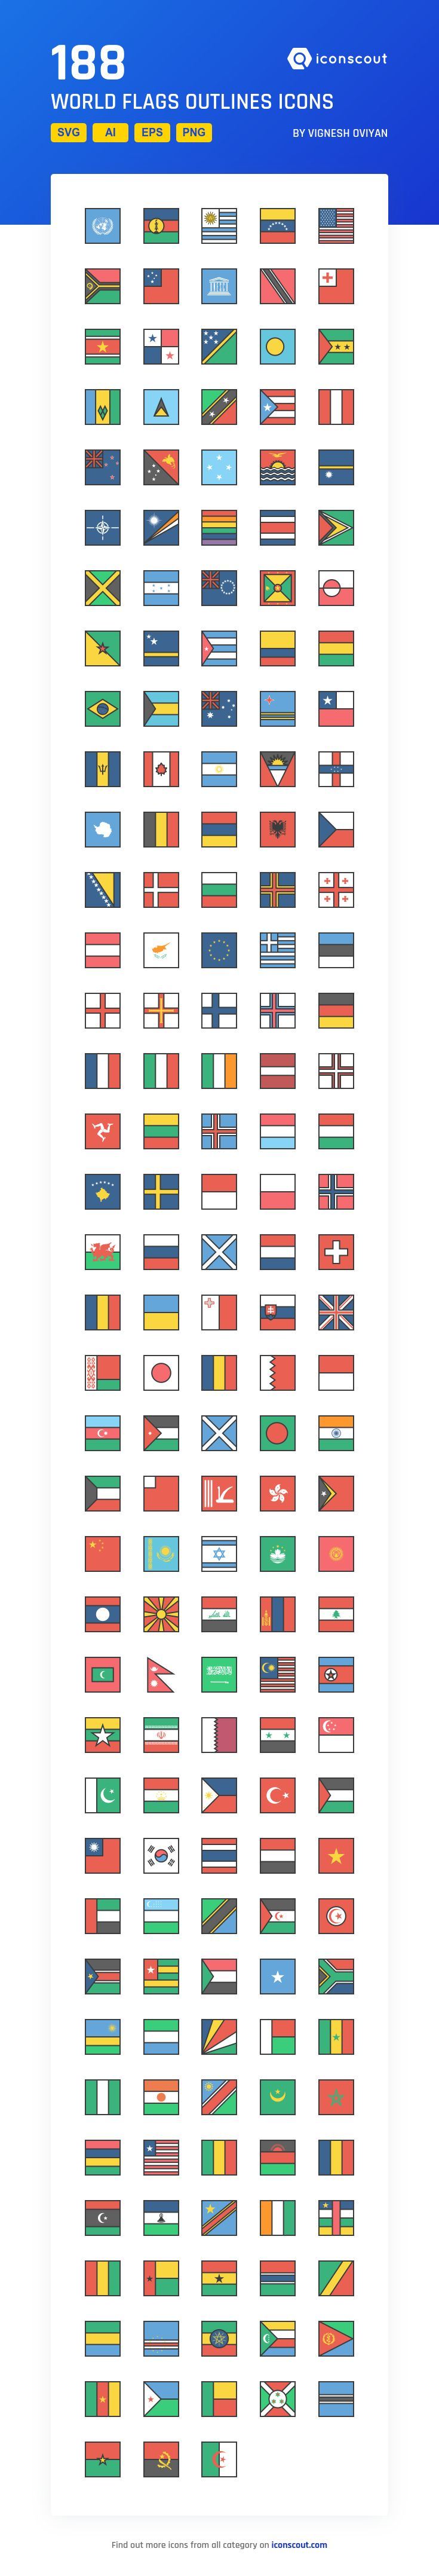 World Flags Outlines  Icon Pack - 188 Filled Outline Icons